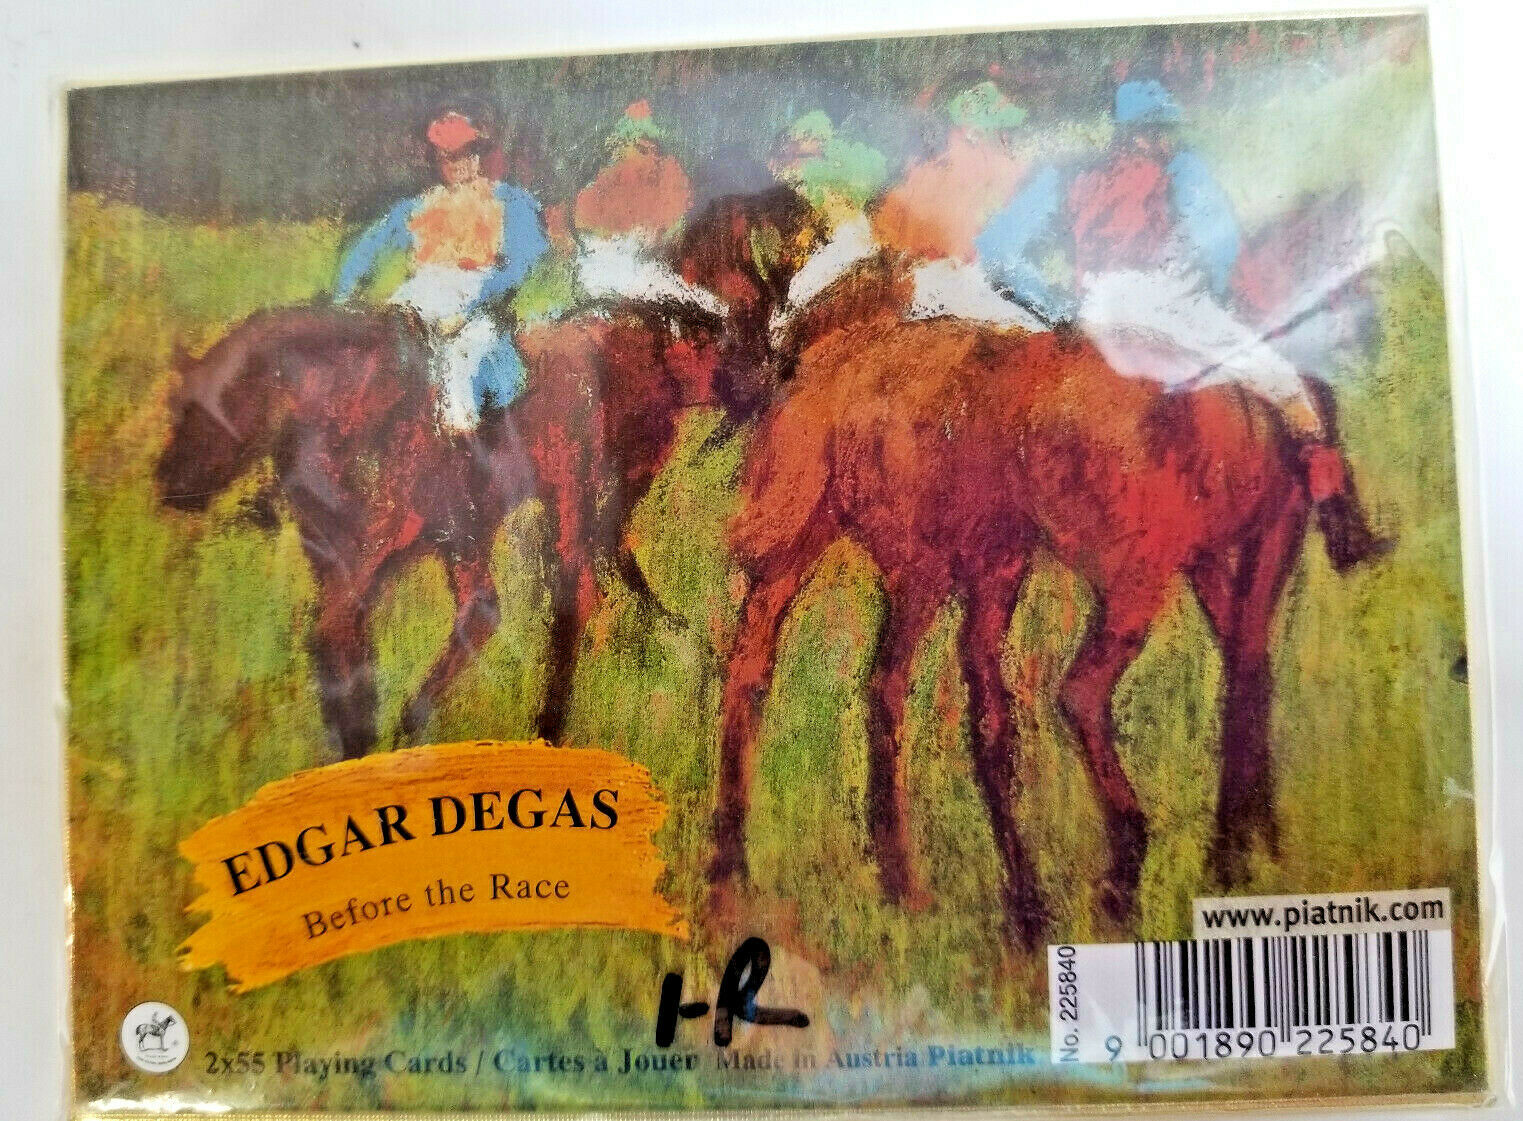 Primary image for Edgar Degas Before the Race Playing Cards Deck Horse Racing 2X55 Cards Piatnik